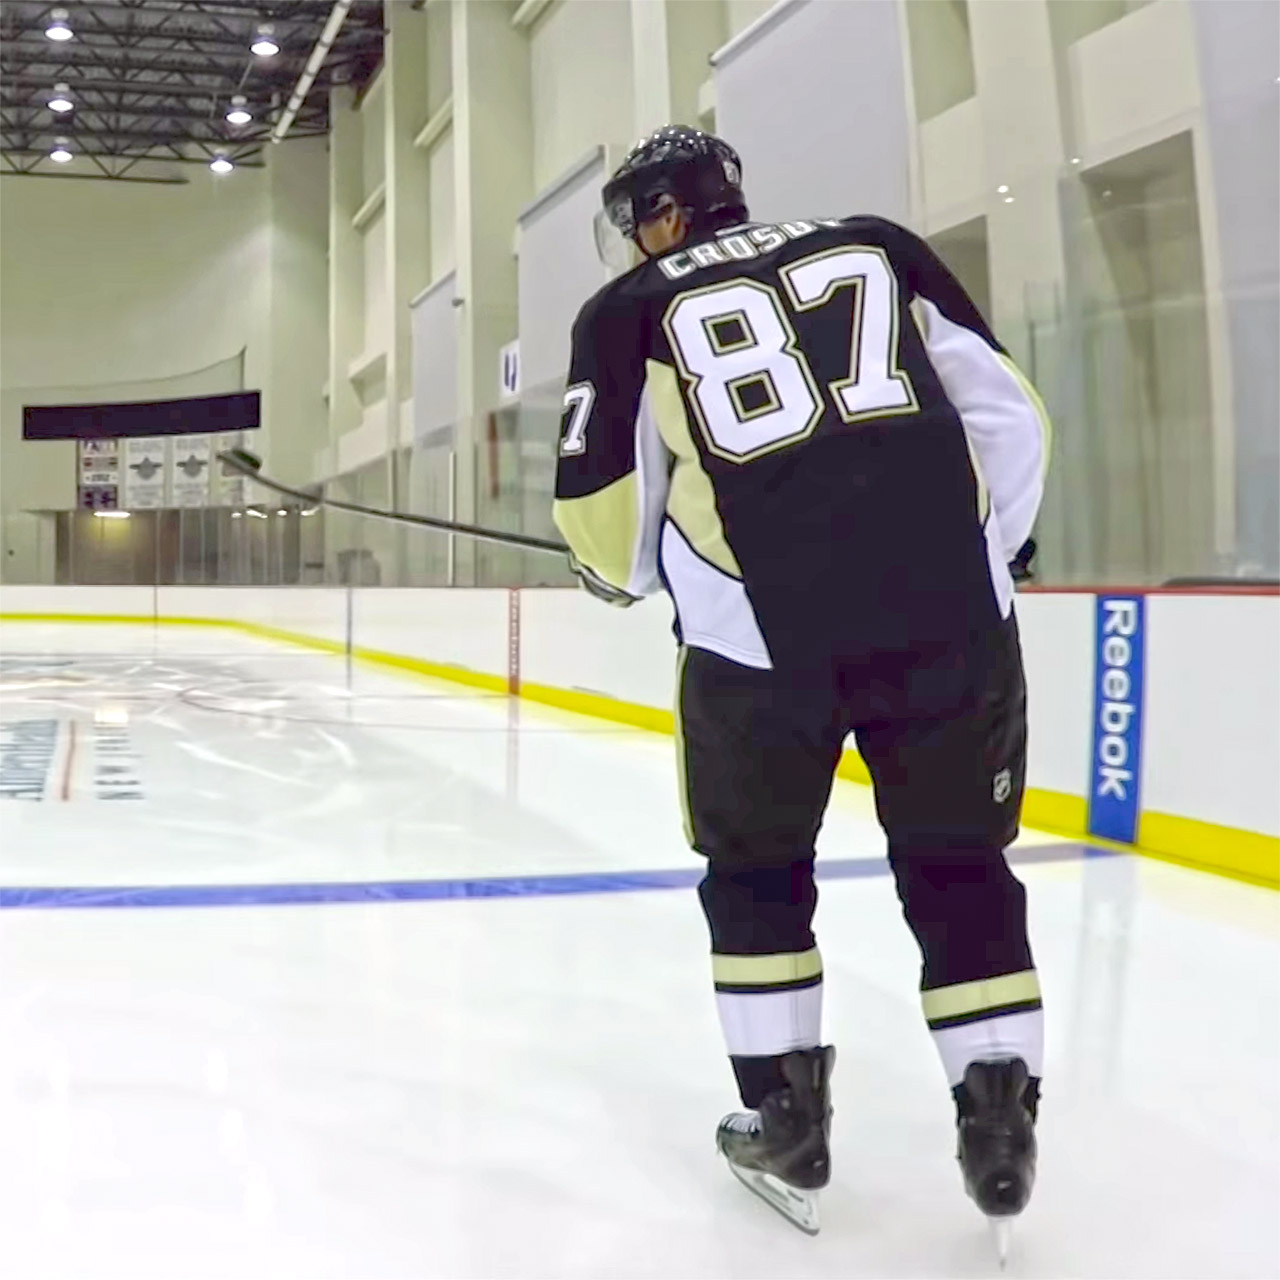 GoPro with Penguins star Sidney Crosby